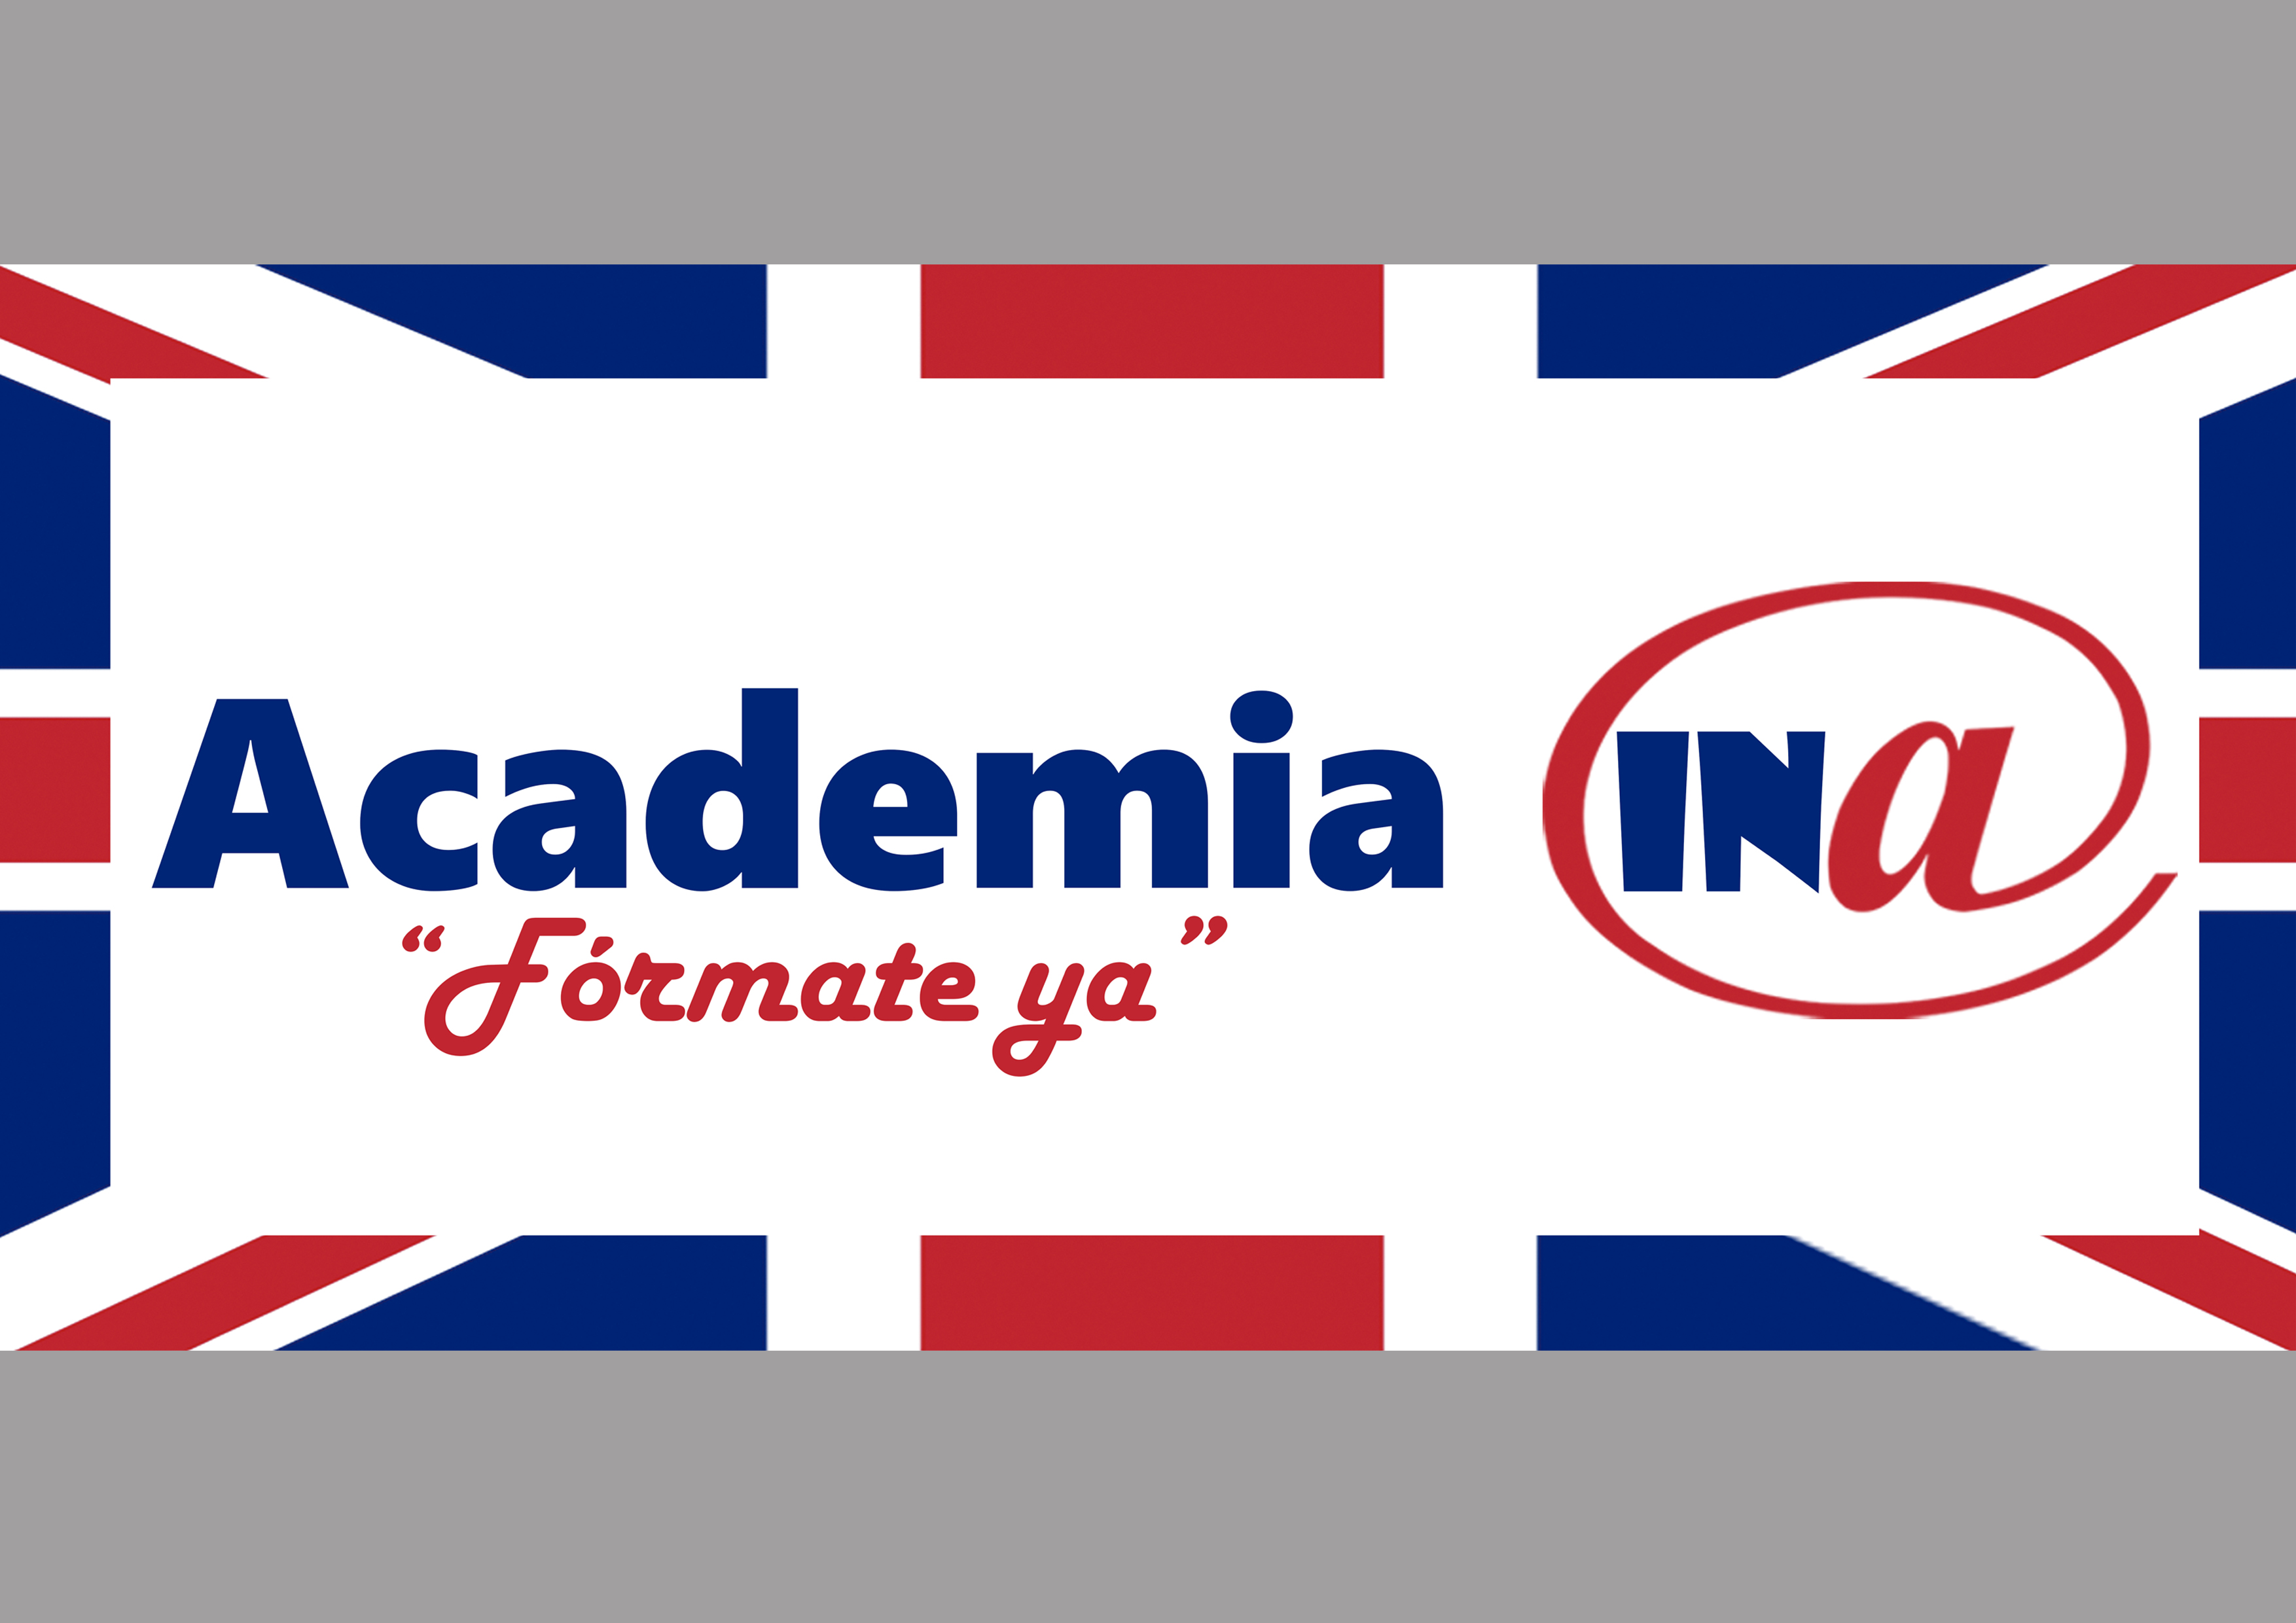 Academia IN@